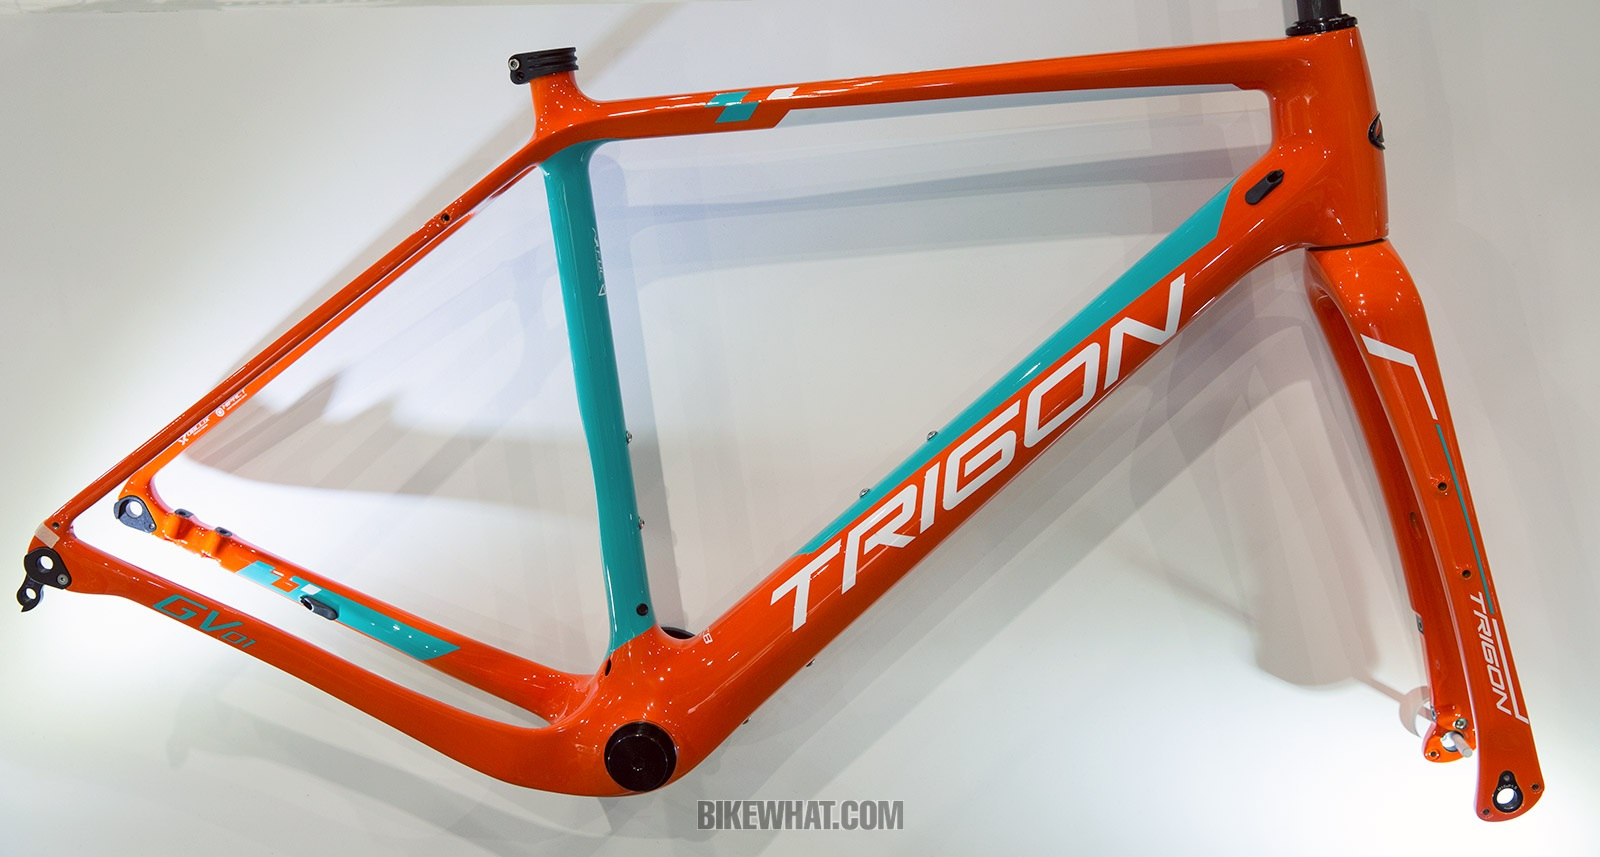 Feature_TaipeiCycle_2019_Trigon_Gv01_2.jpg